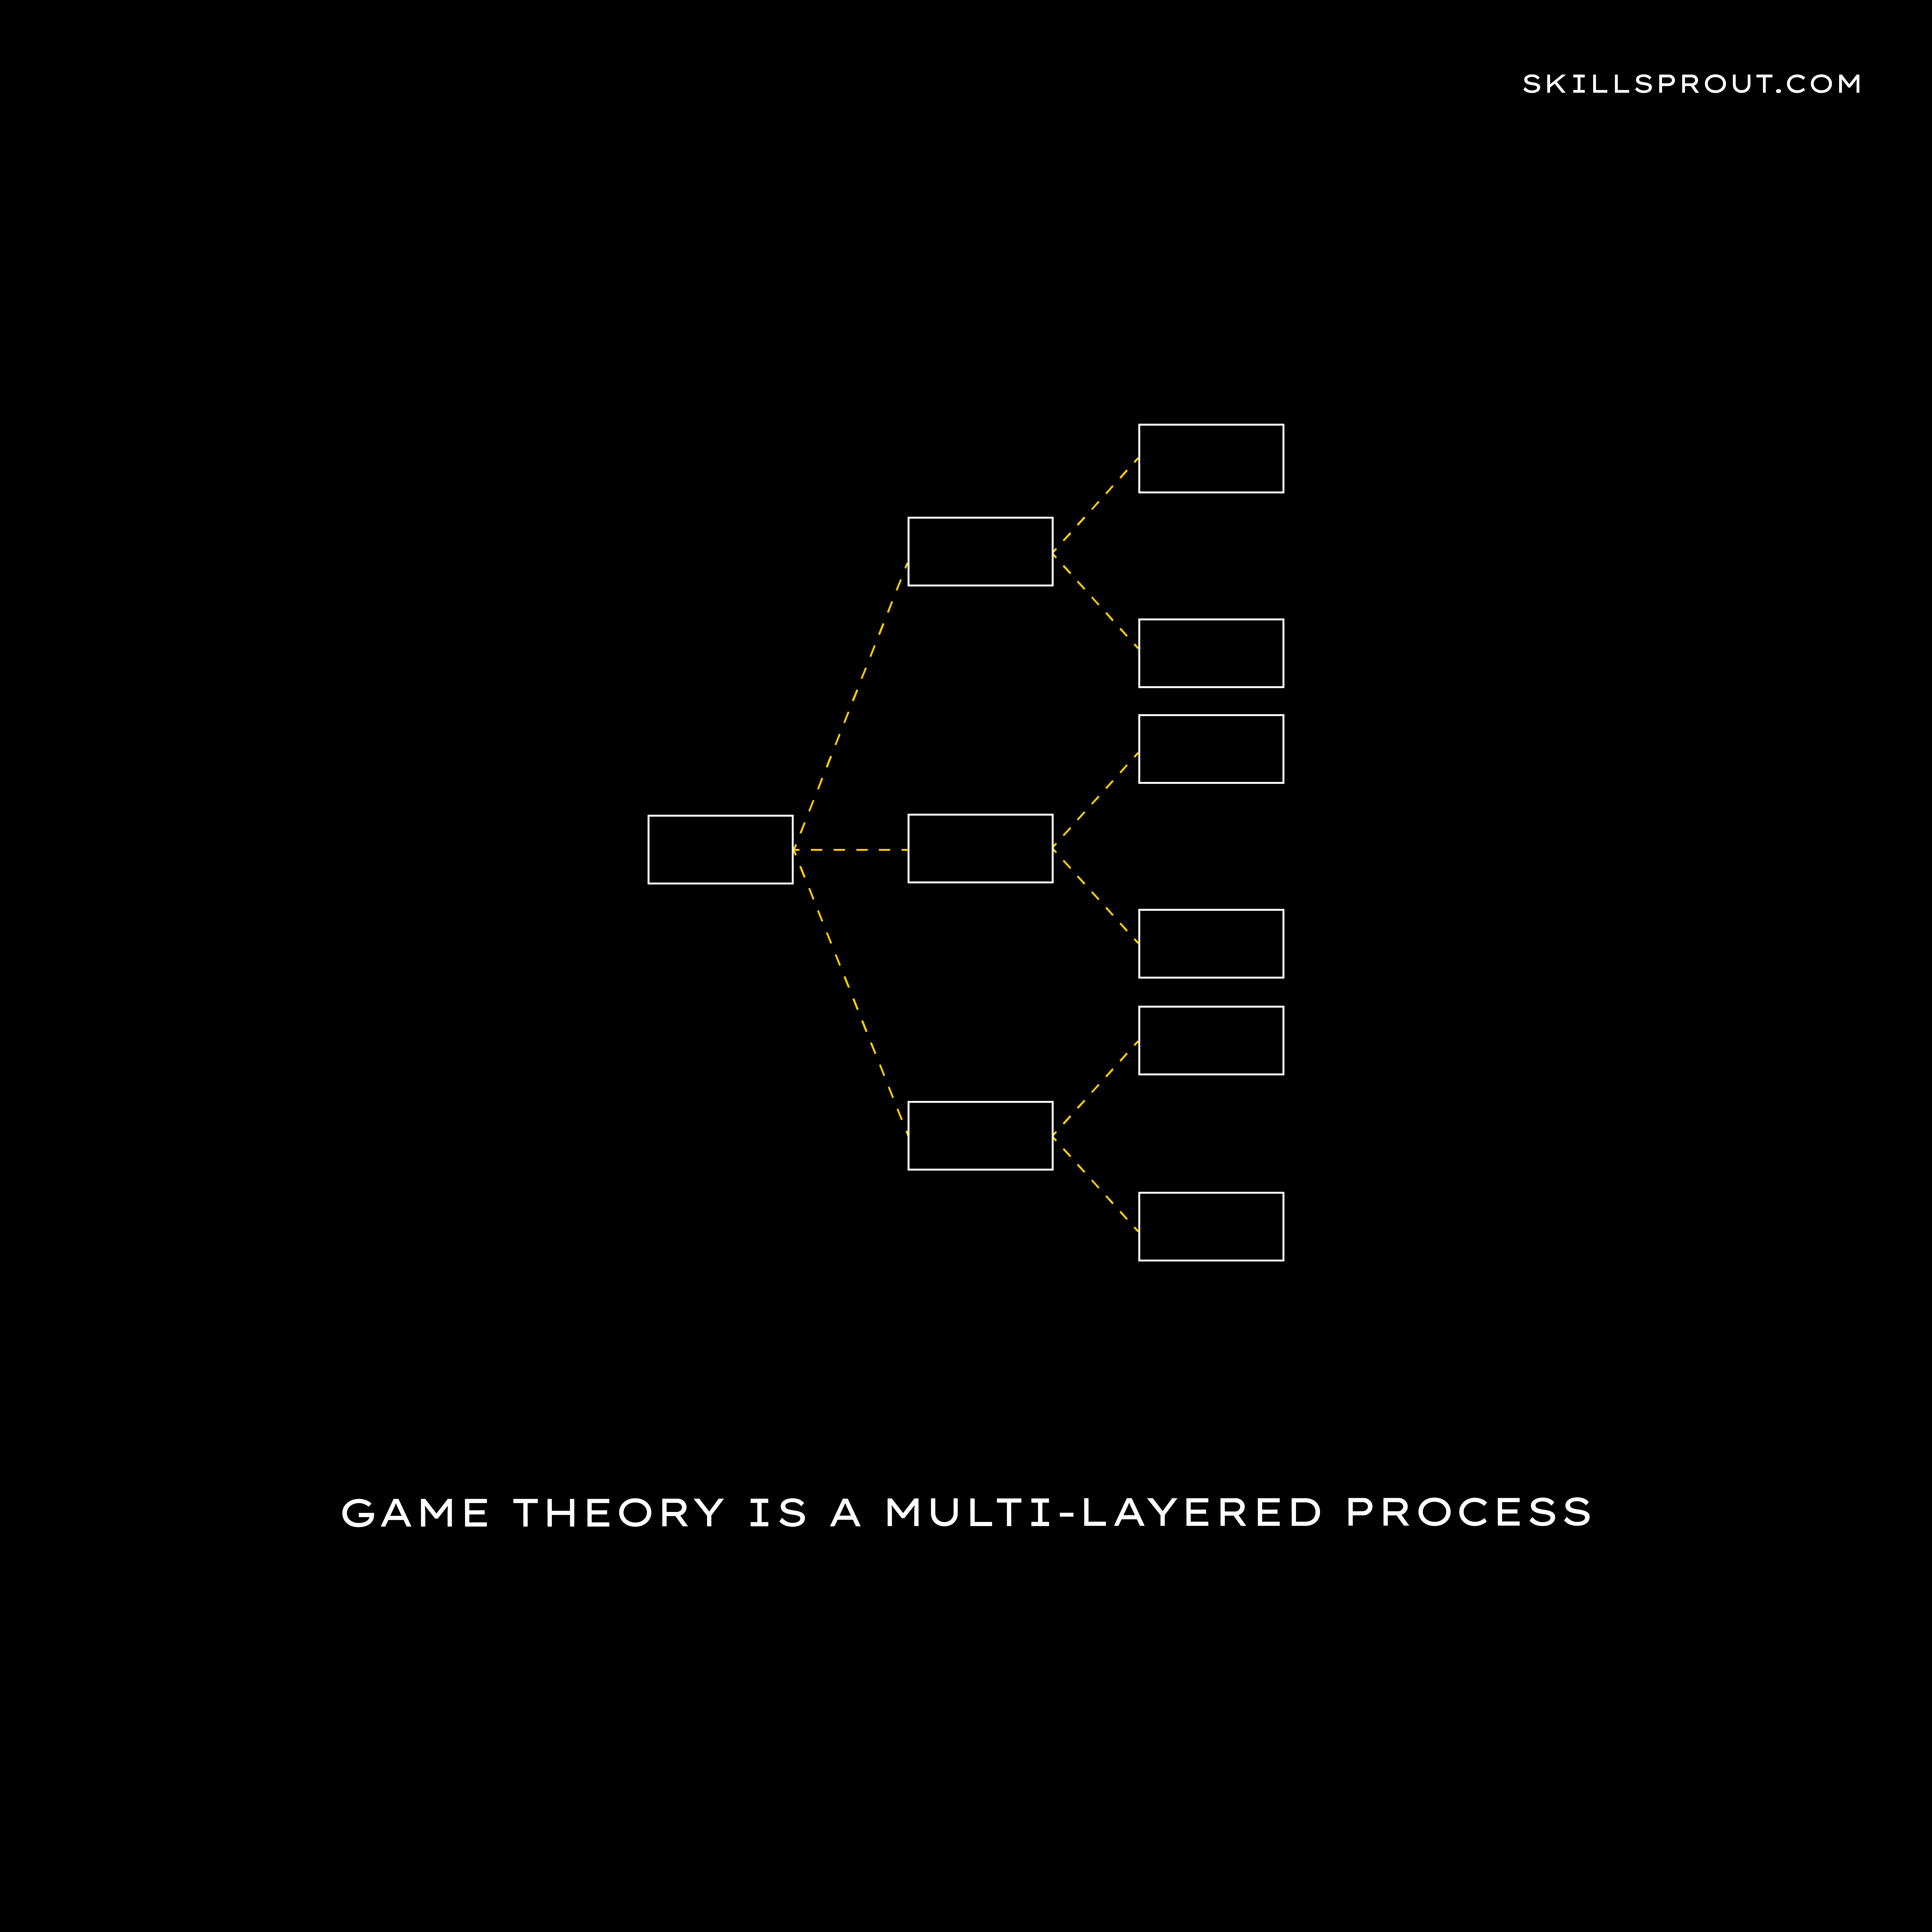 Game theory is a multi-layered process